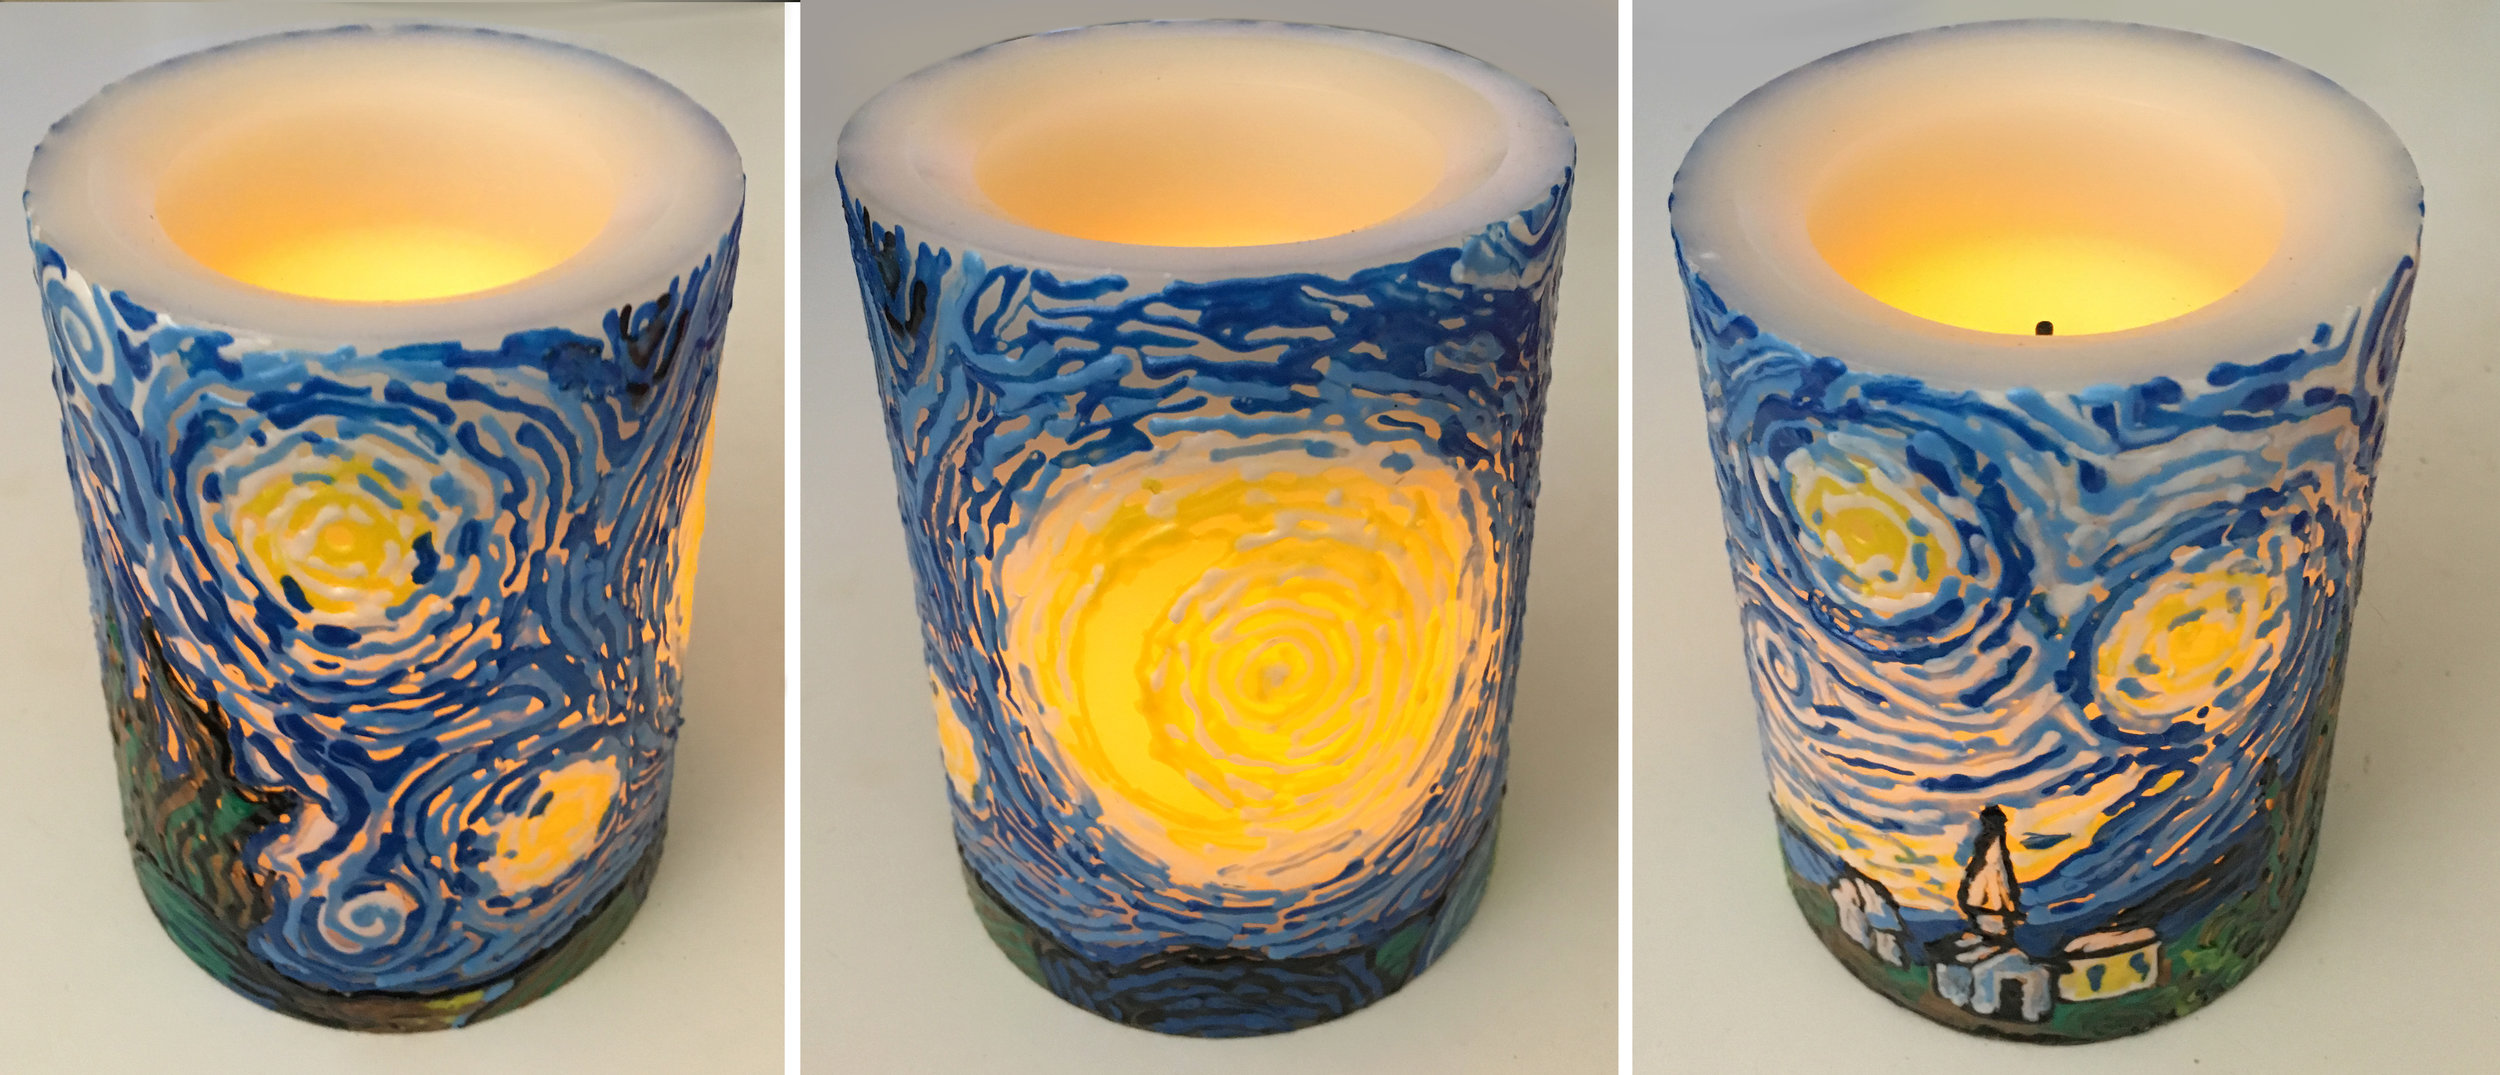 Marabu Candle Liner on wax LED candle